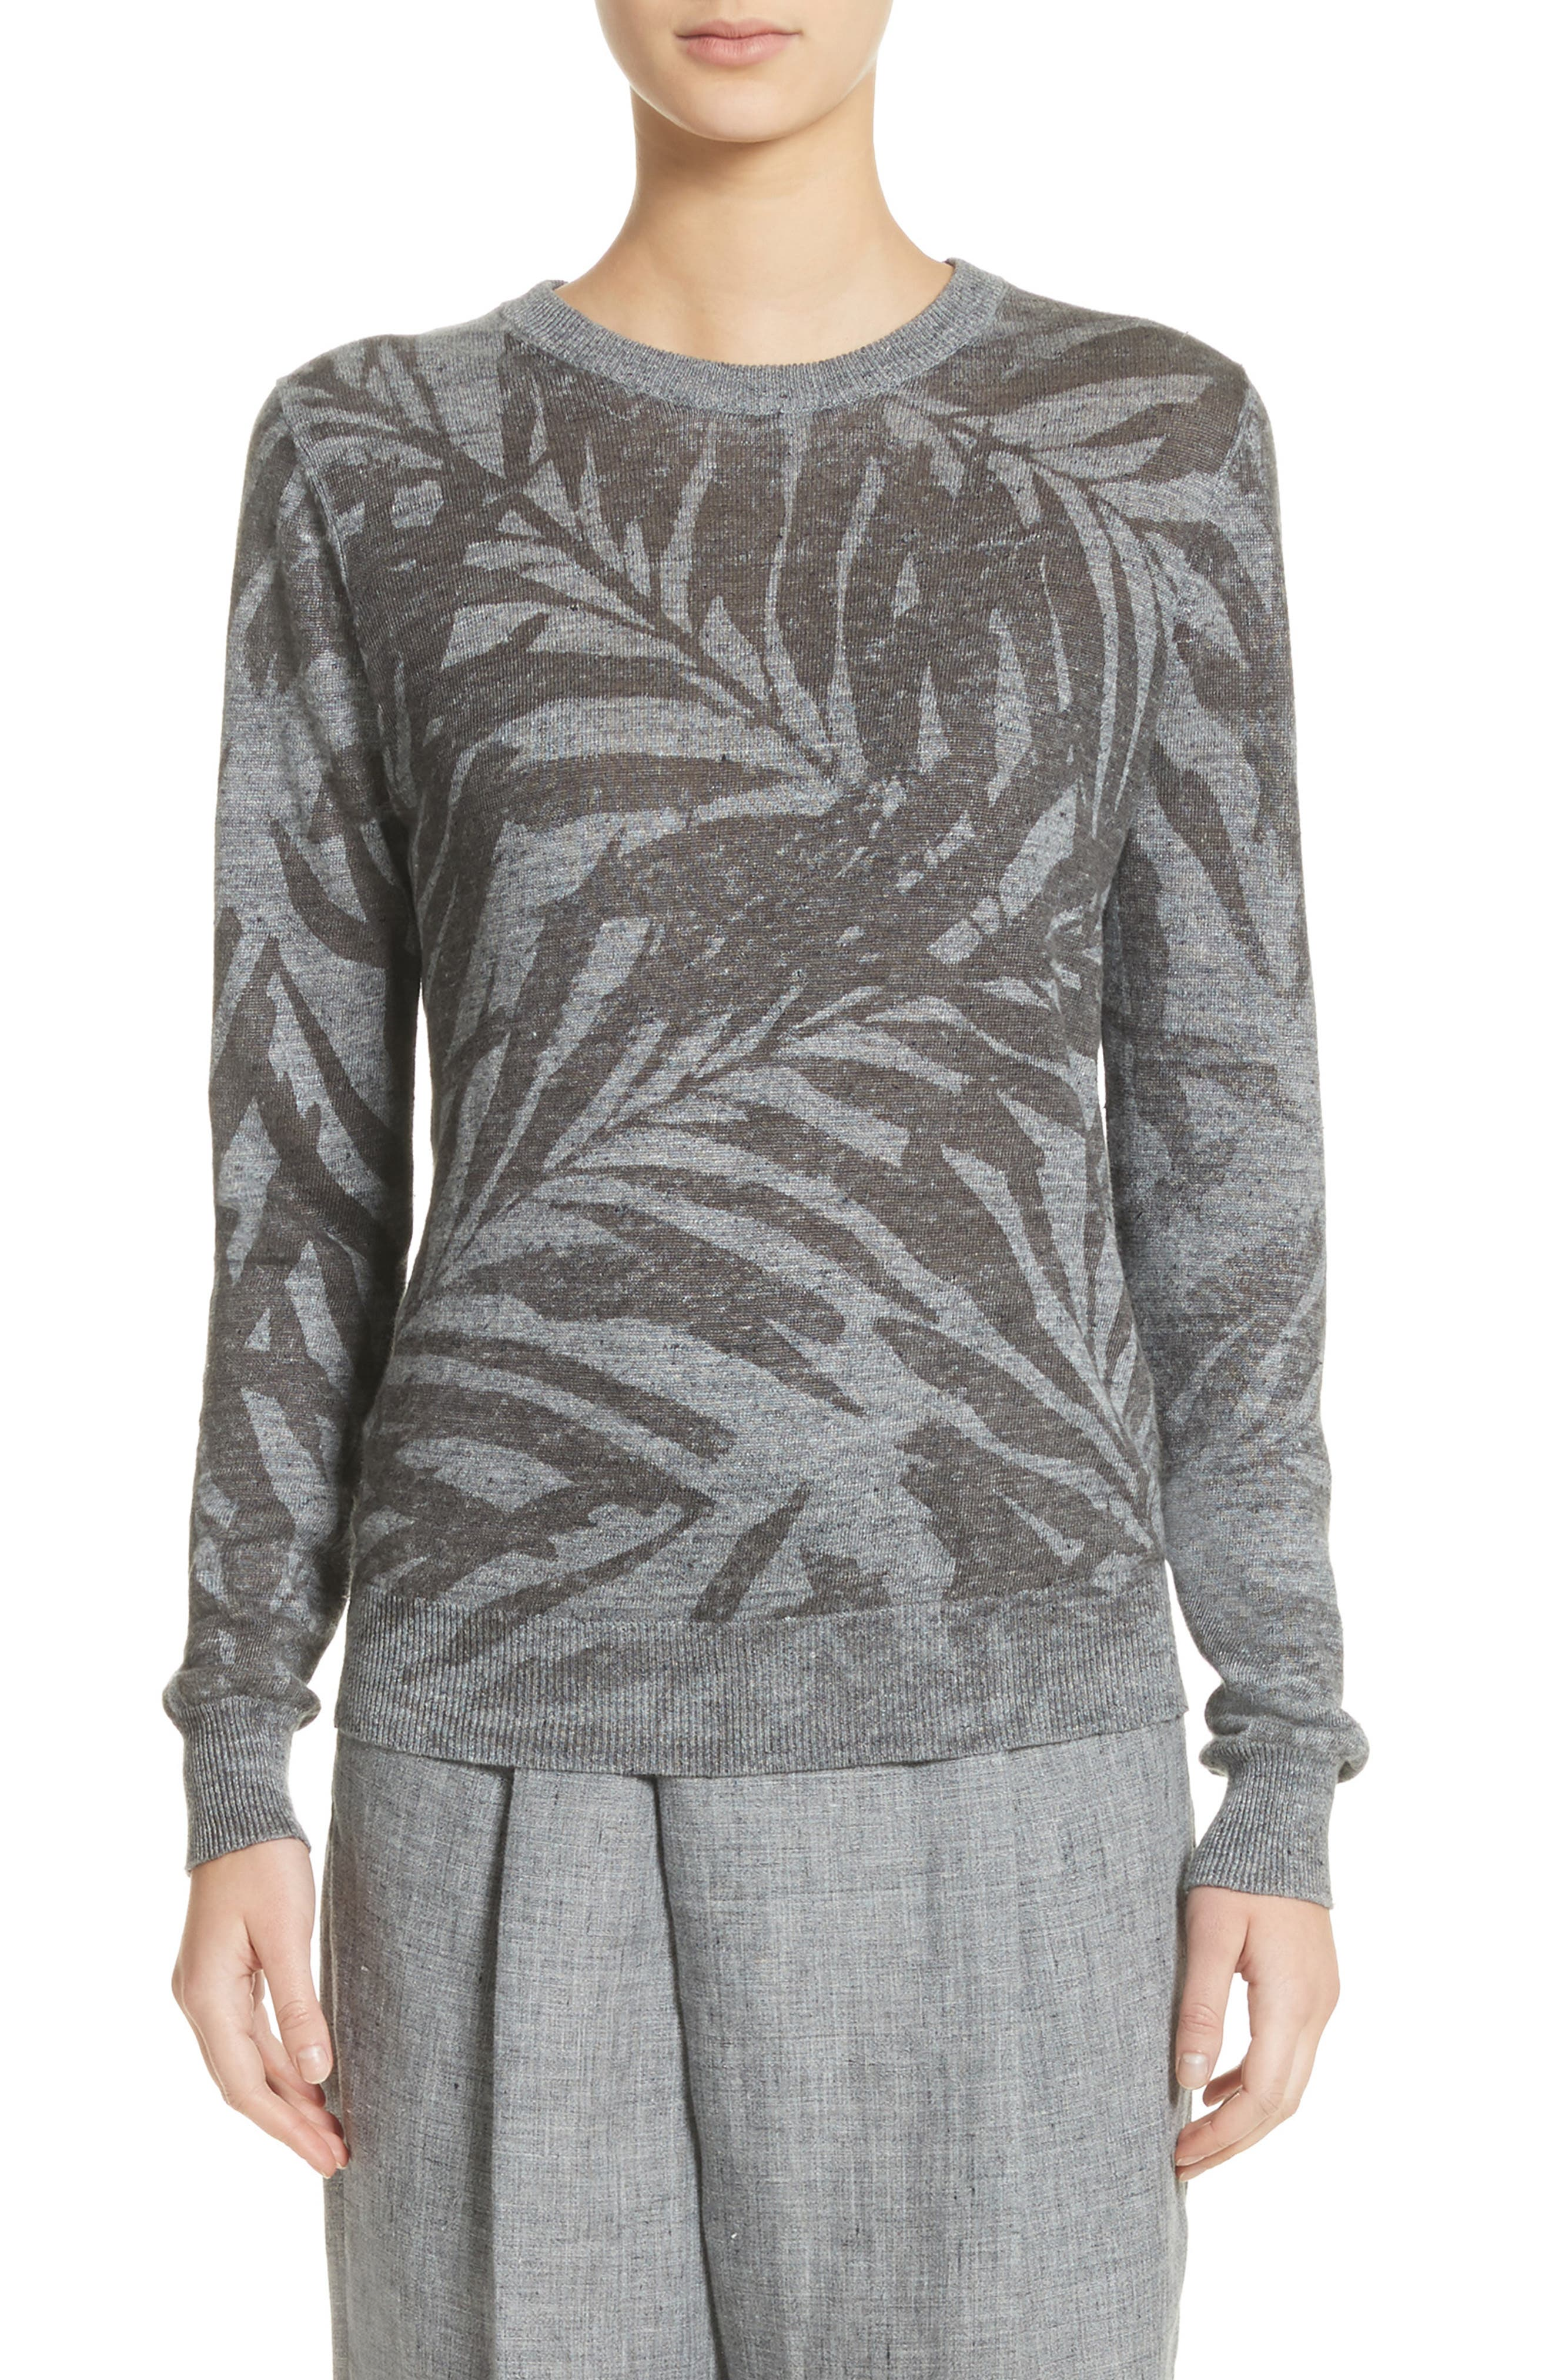 Michael Kors Palm Print Linen Sweater